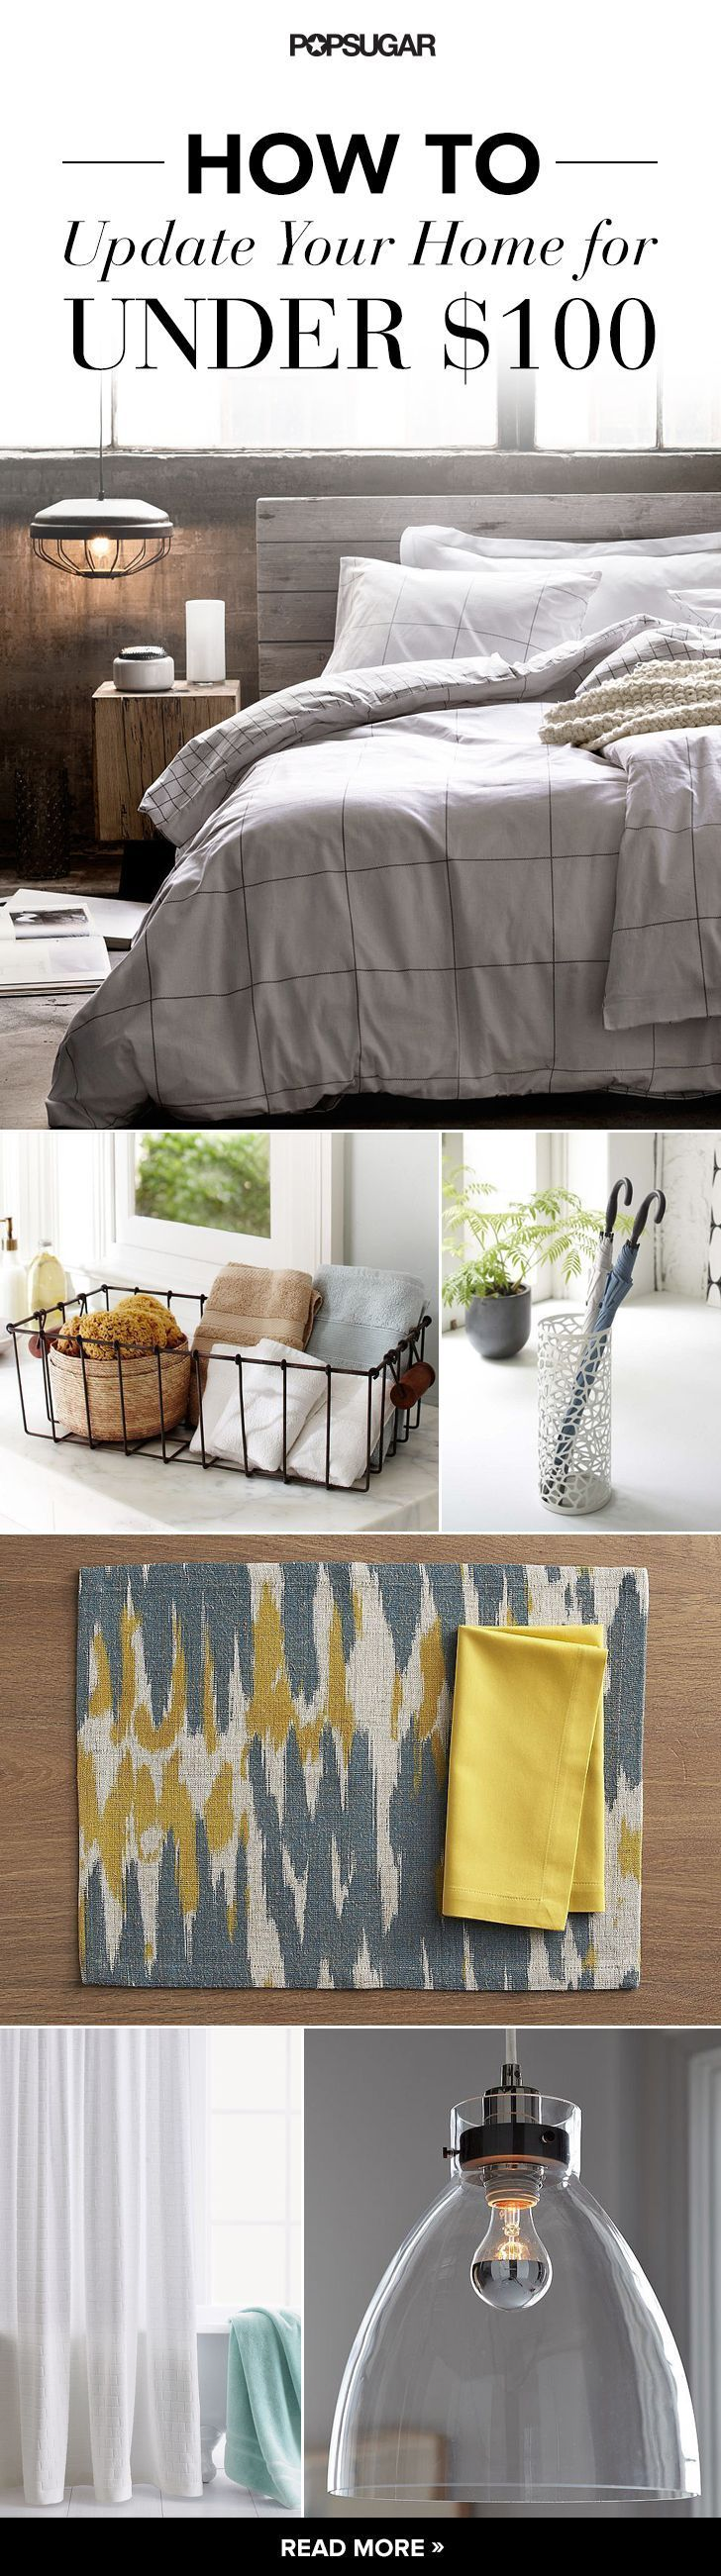 ideas about Affordable Home Decor on Pinterest Curb appeal